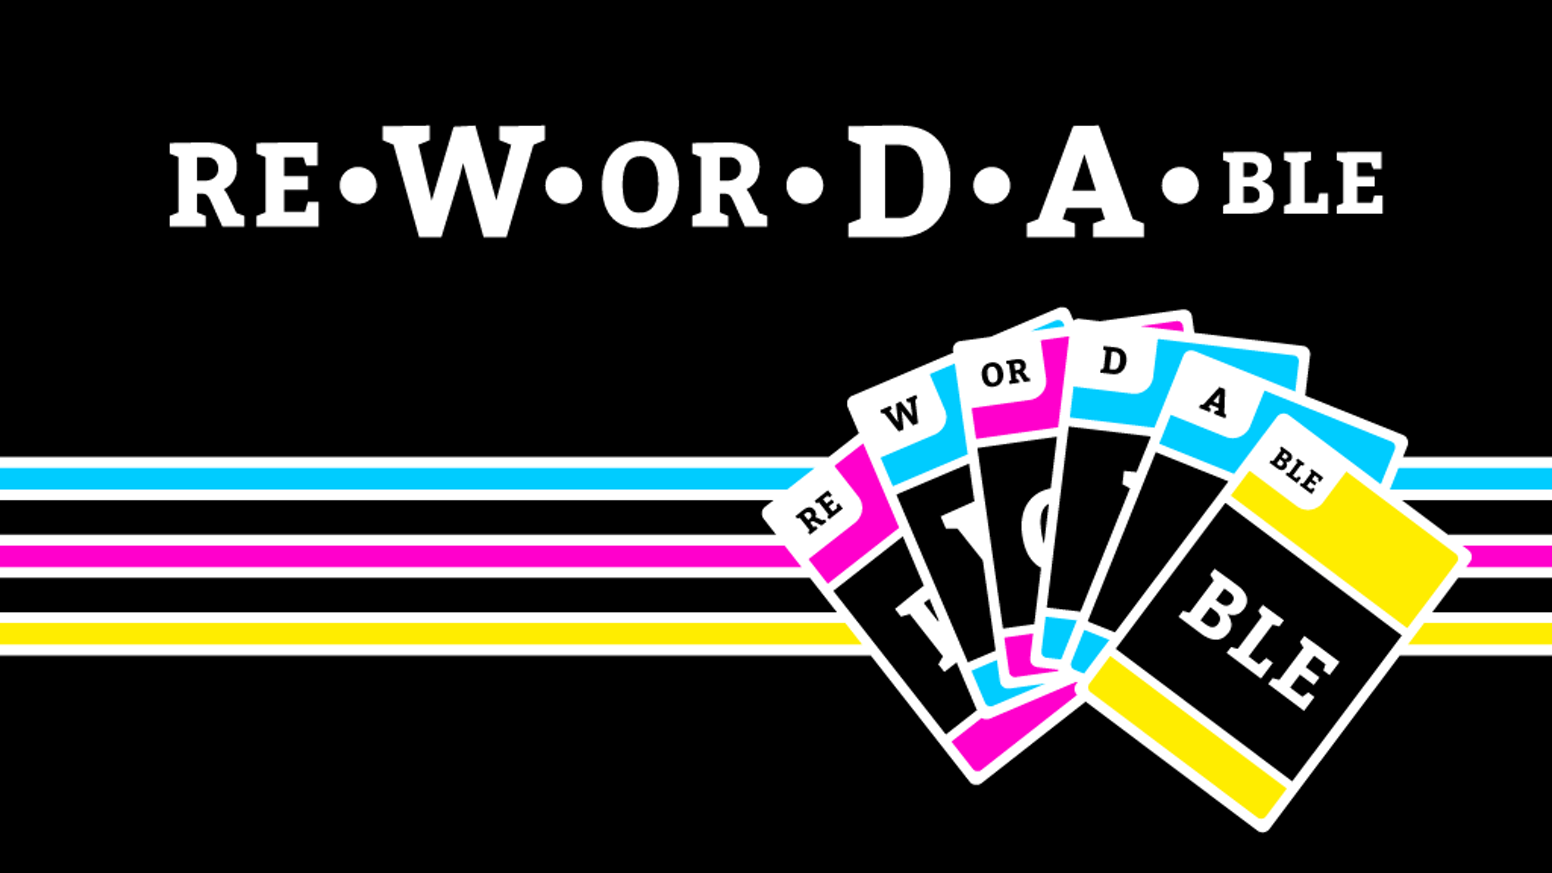 Rewordable is a uniquely fragmented word-building card game, designed for making longer, quicker, and more colorful words.